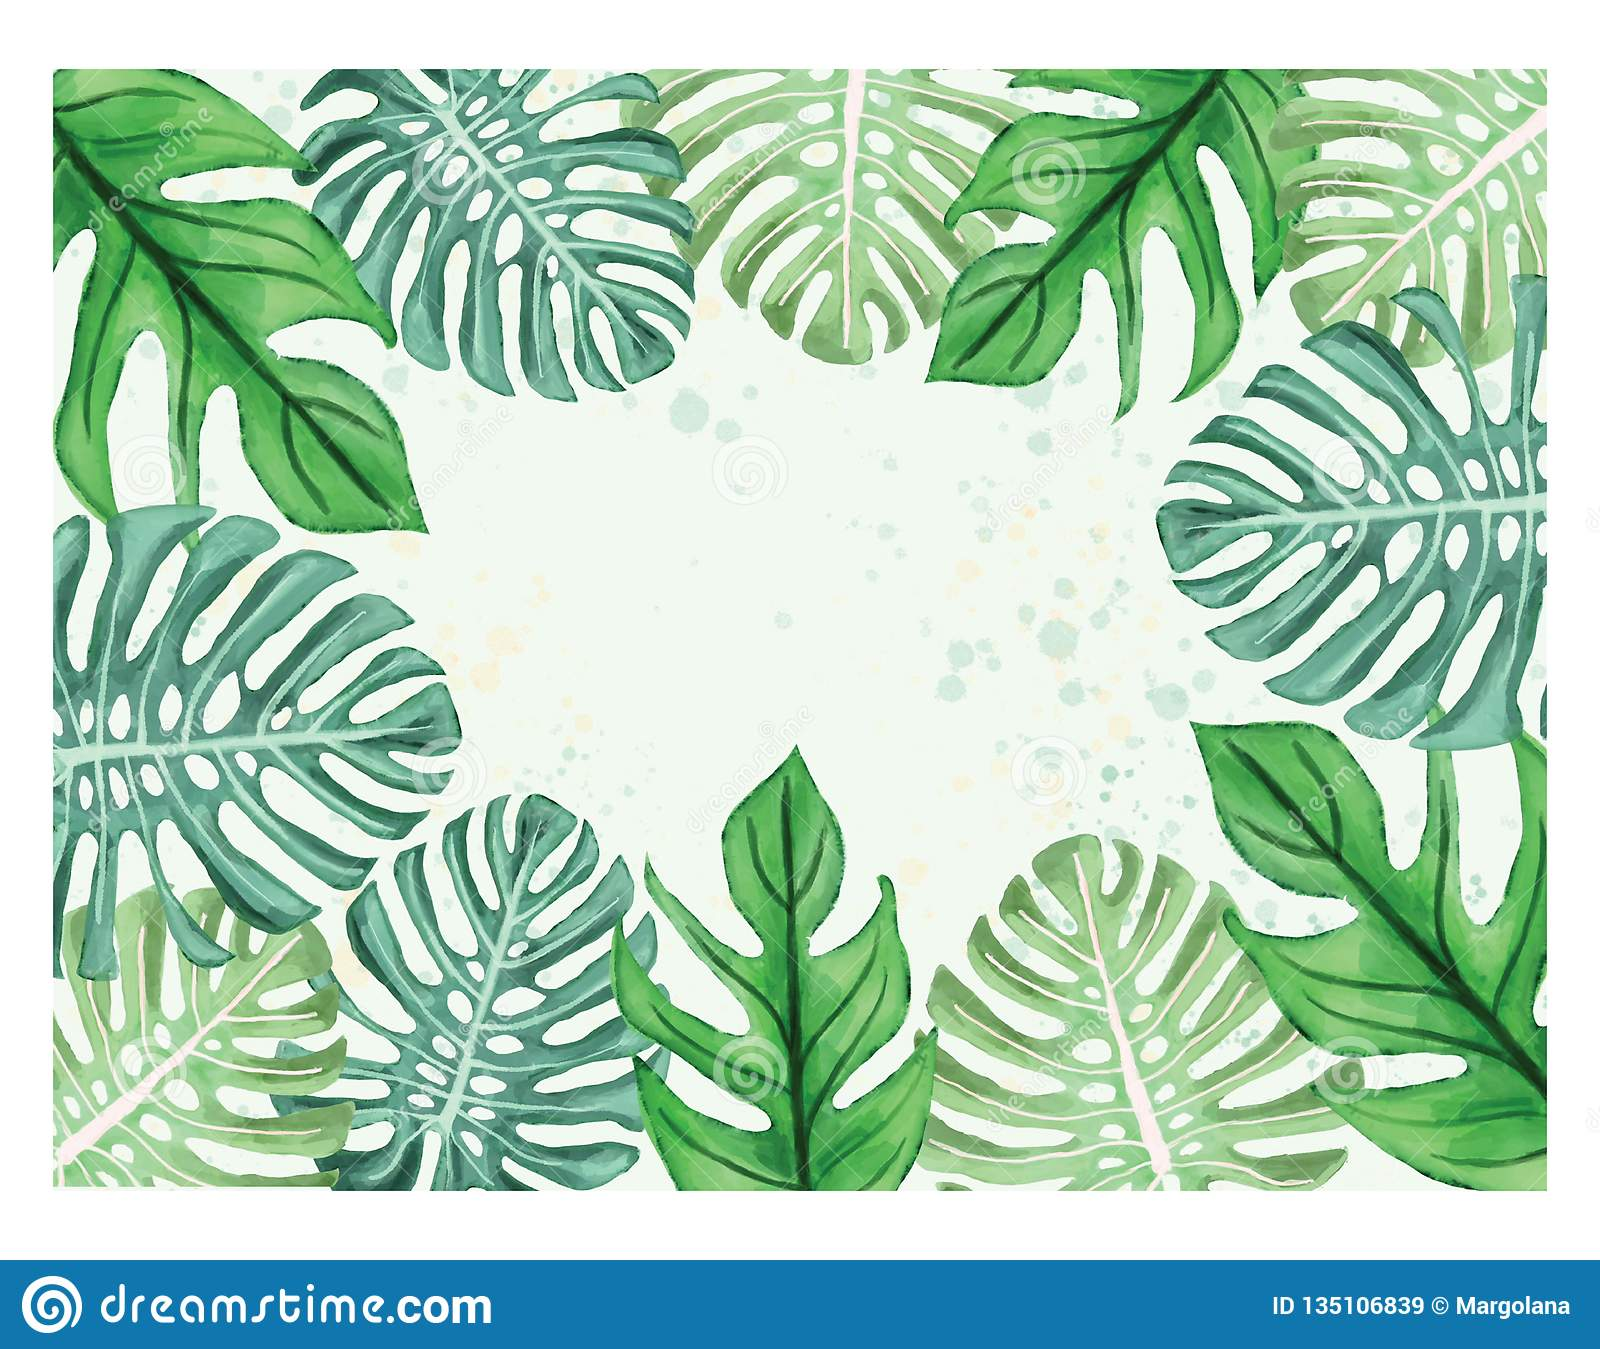 Watercolor Illustration Of Tropical Leaves Monstera Leaves Border Frame Stock Illustration Illustration Of Border Decorative 135106839 Tropical leaves wallpaper border nl57004b. https www dreamstime com watercolor illustration tropical leaves monstera leaves border frame watercolor illustration tropical leaves beautiful image135106839